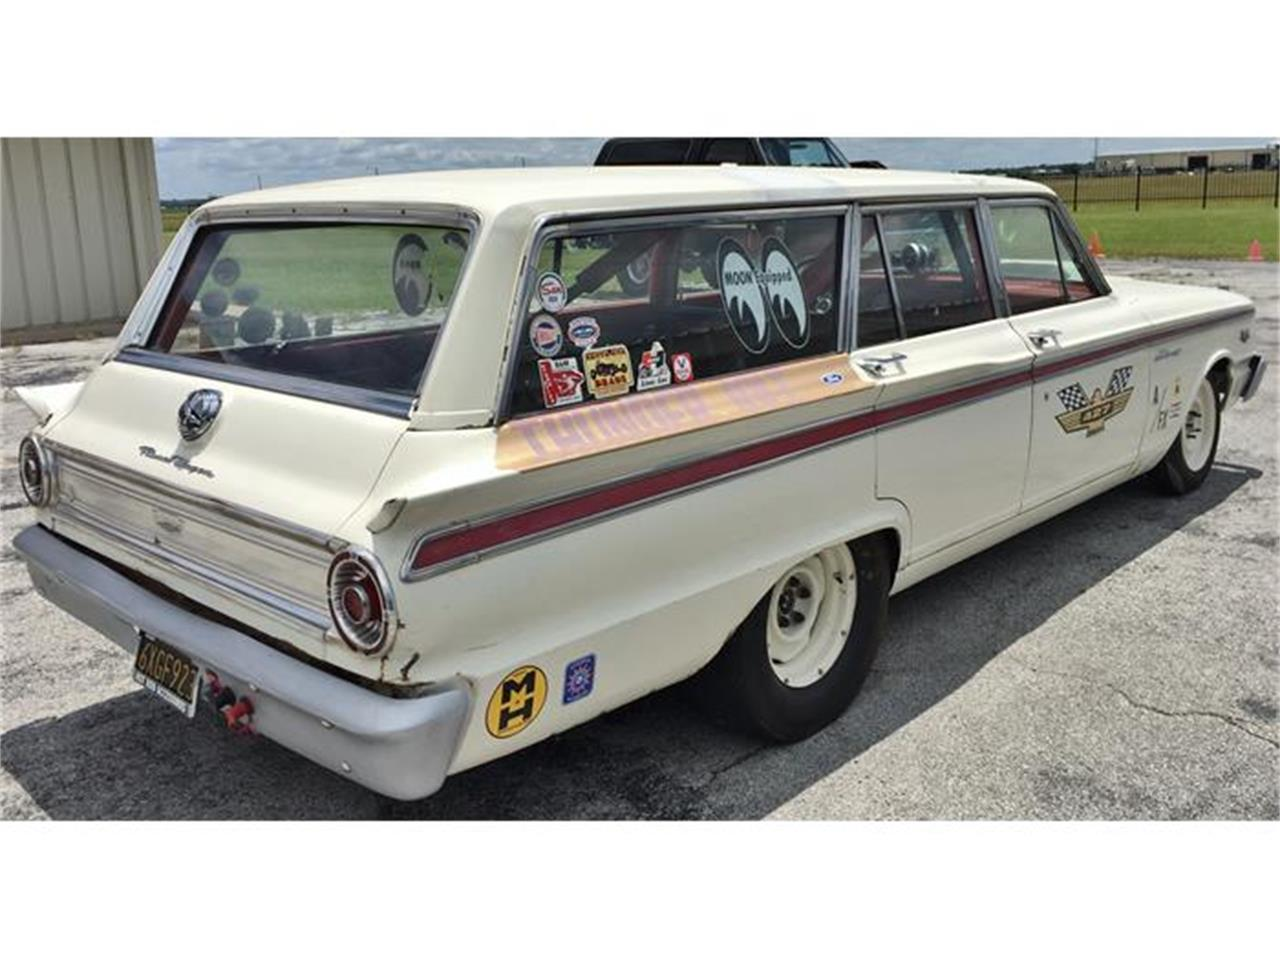 For Sale: 1963 Ford Fairlane 500 in Palmer, Texas